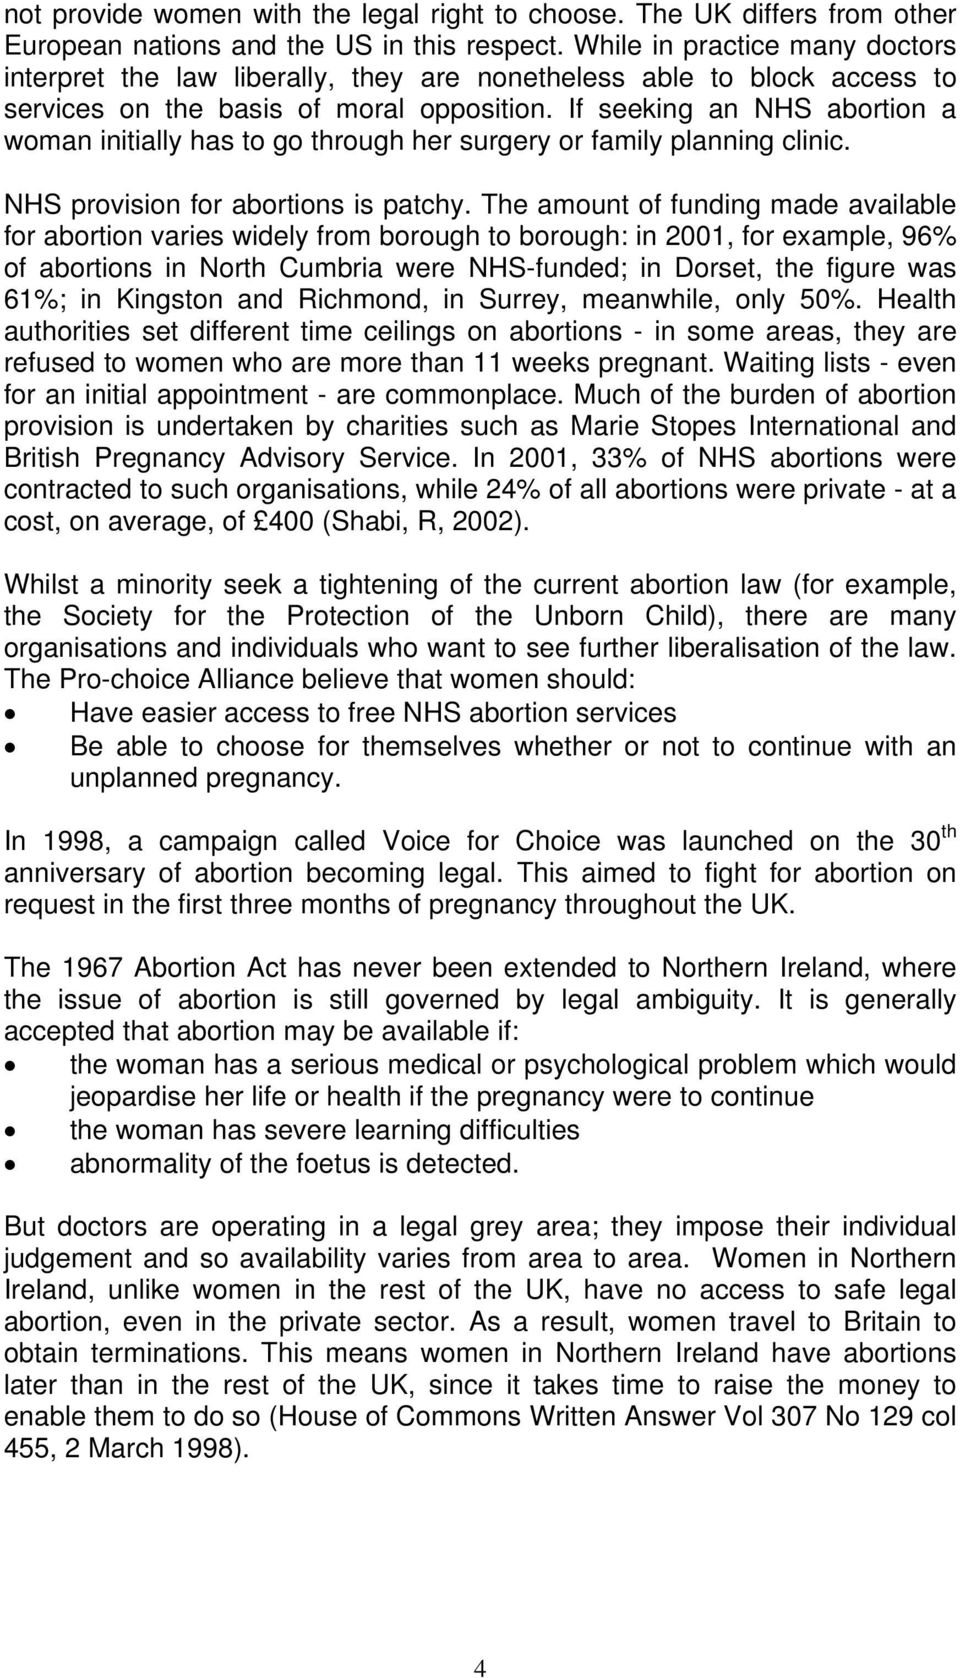 If seeking an NHS abortion a woman initially has to go through her surgery or family planning clinic. NHS provision for abortions is patchy.